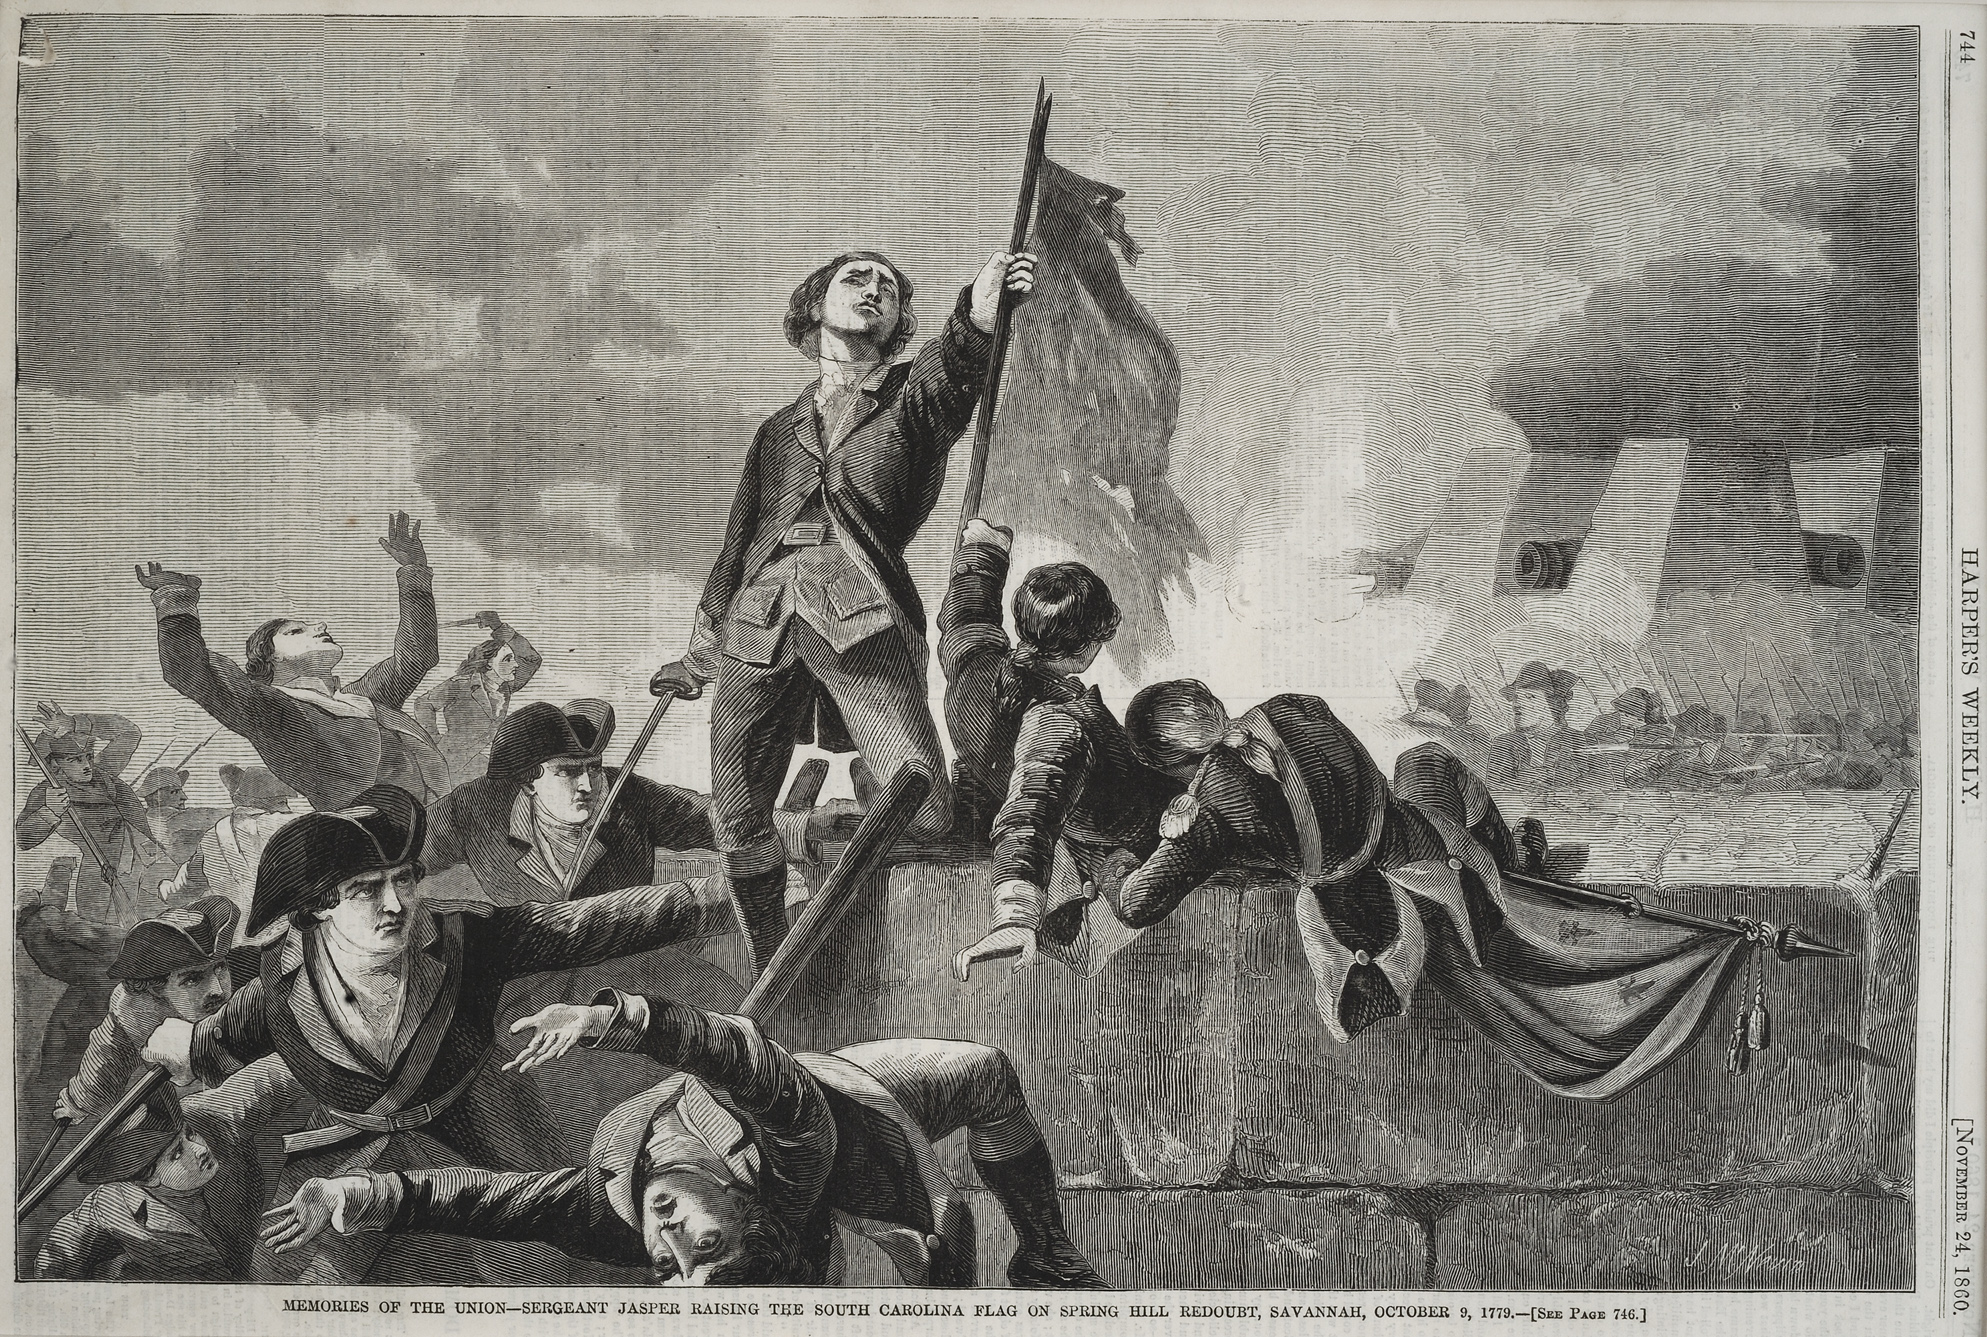 Memories of the Union – Sergeant Jasper Raising the South Carolina Flag on Spring Hill Redoubt, Savannah, October 9, 1779, John McNevin, Harper's Weekly, November 24, 1860